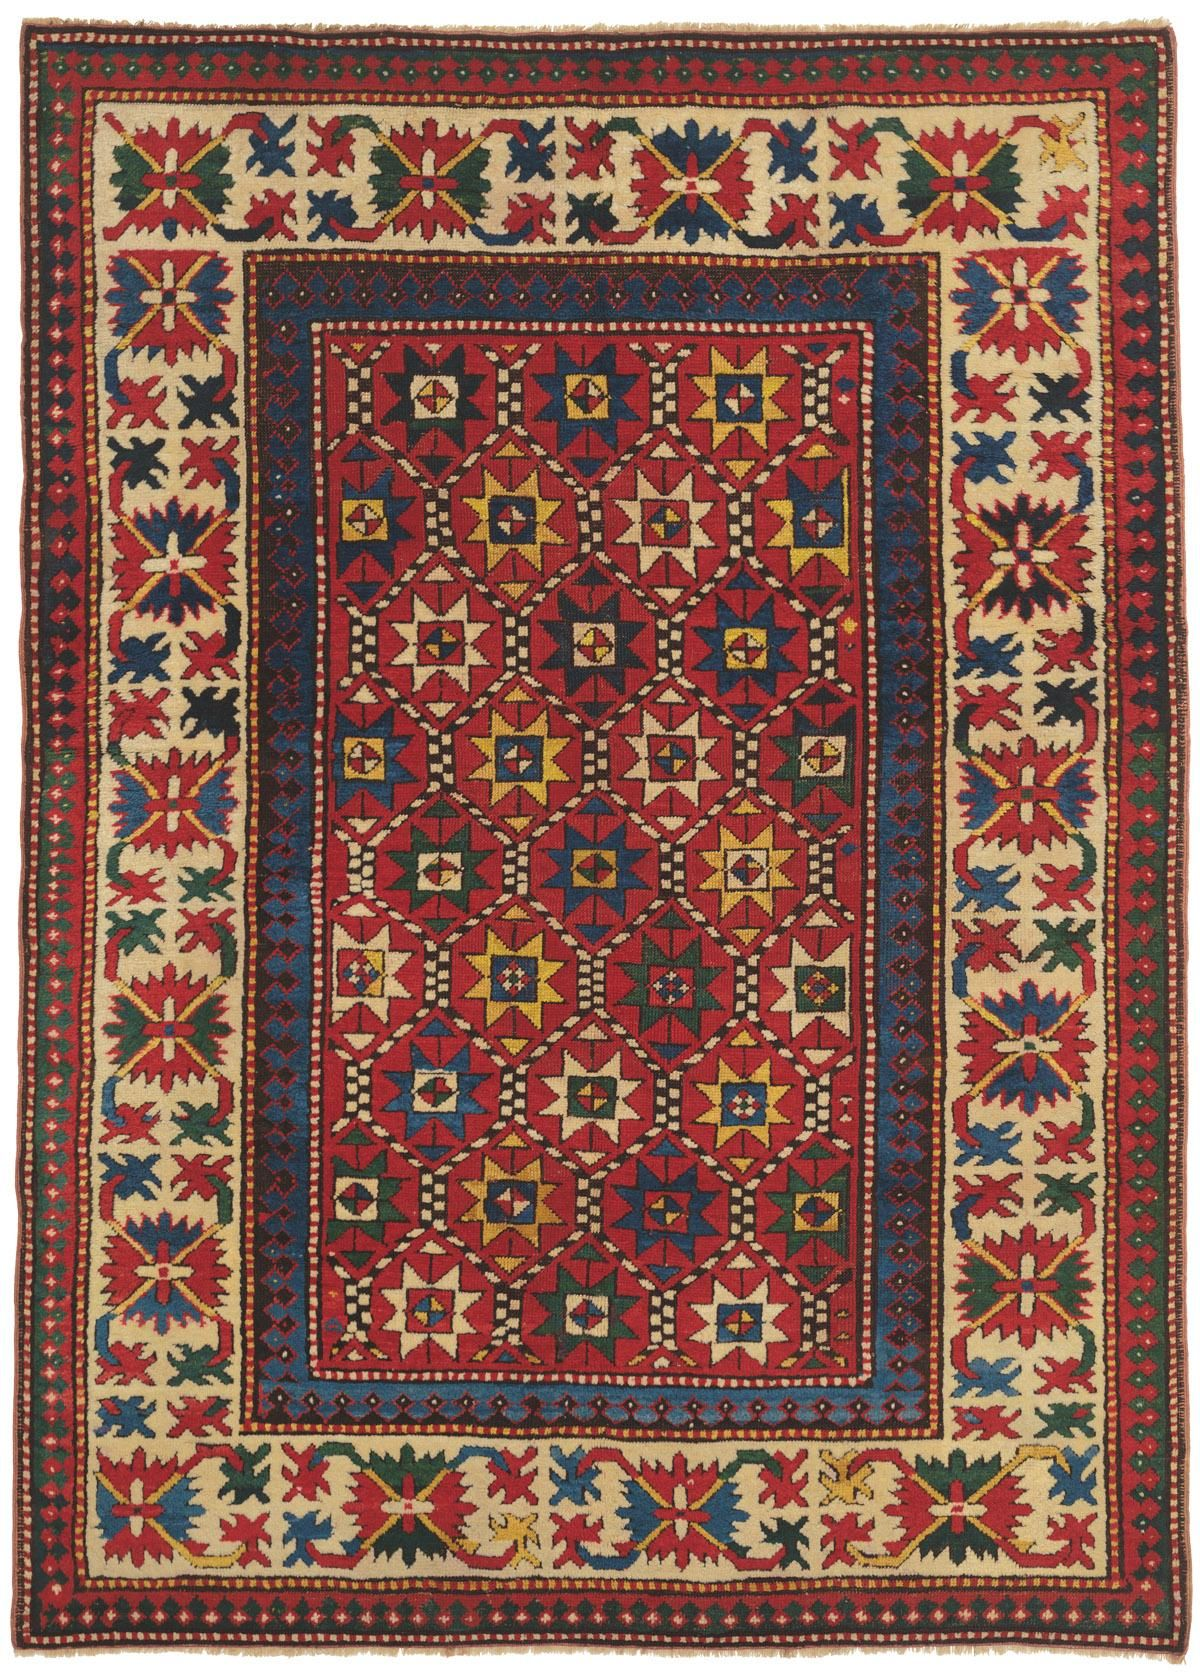 Basic Overview Of Antique Collectible Caucasian Rugs And Carpets Rugs Rugs On Carpet Tribal Rug